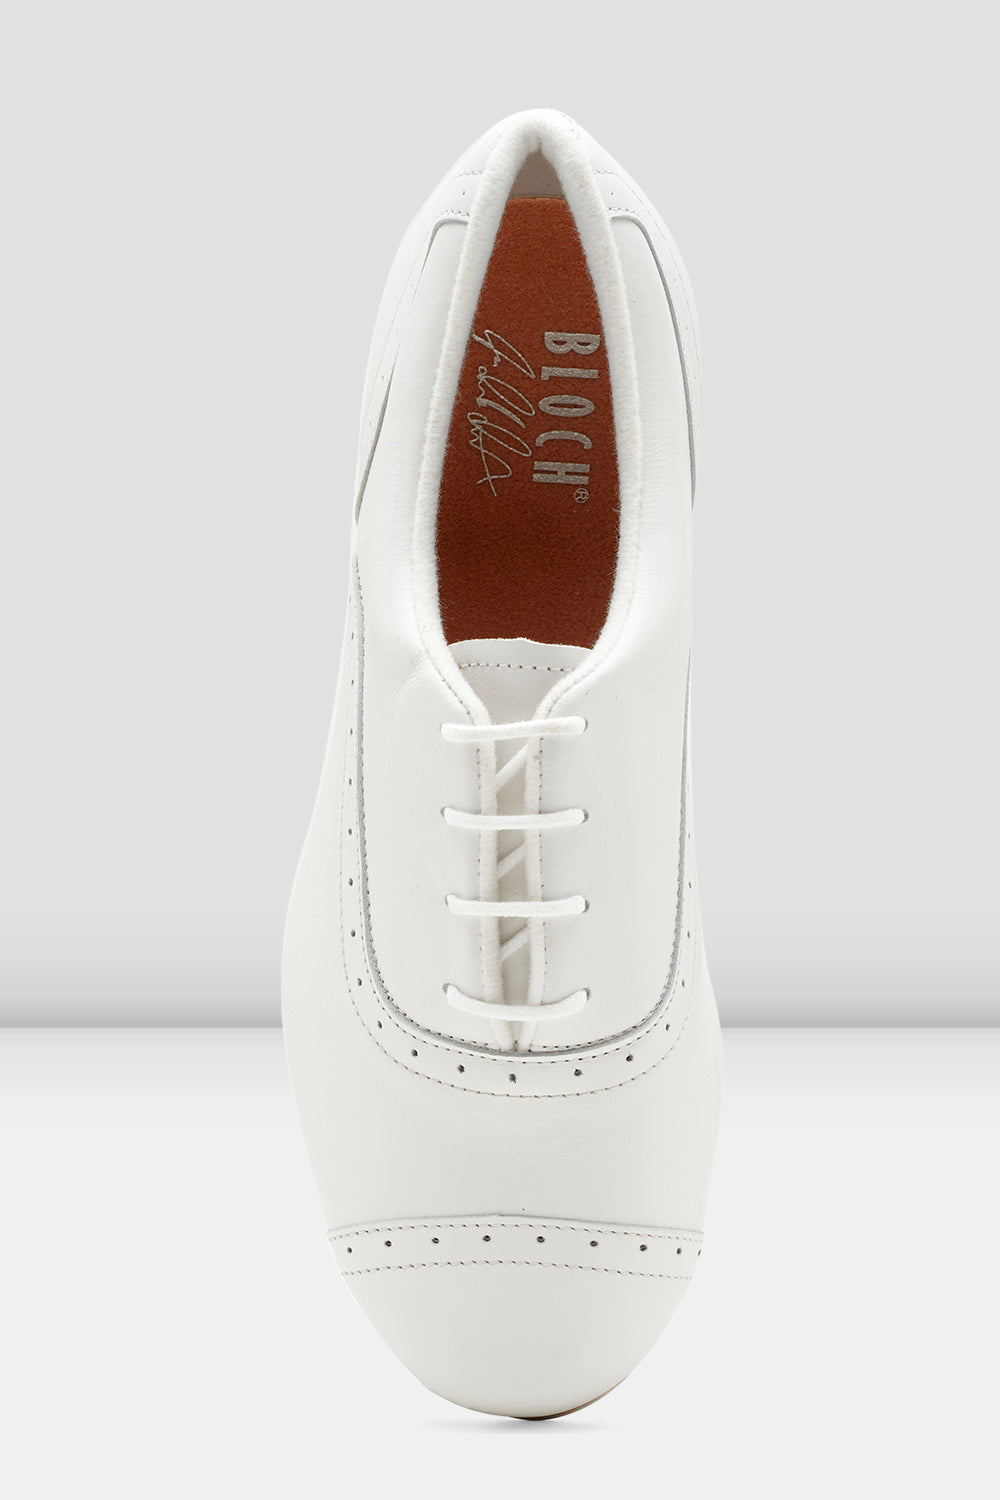 White leather Bloch Ladies Jason Samuels Smith Tap Shoes single shoe  focus on top of shoe